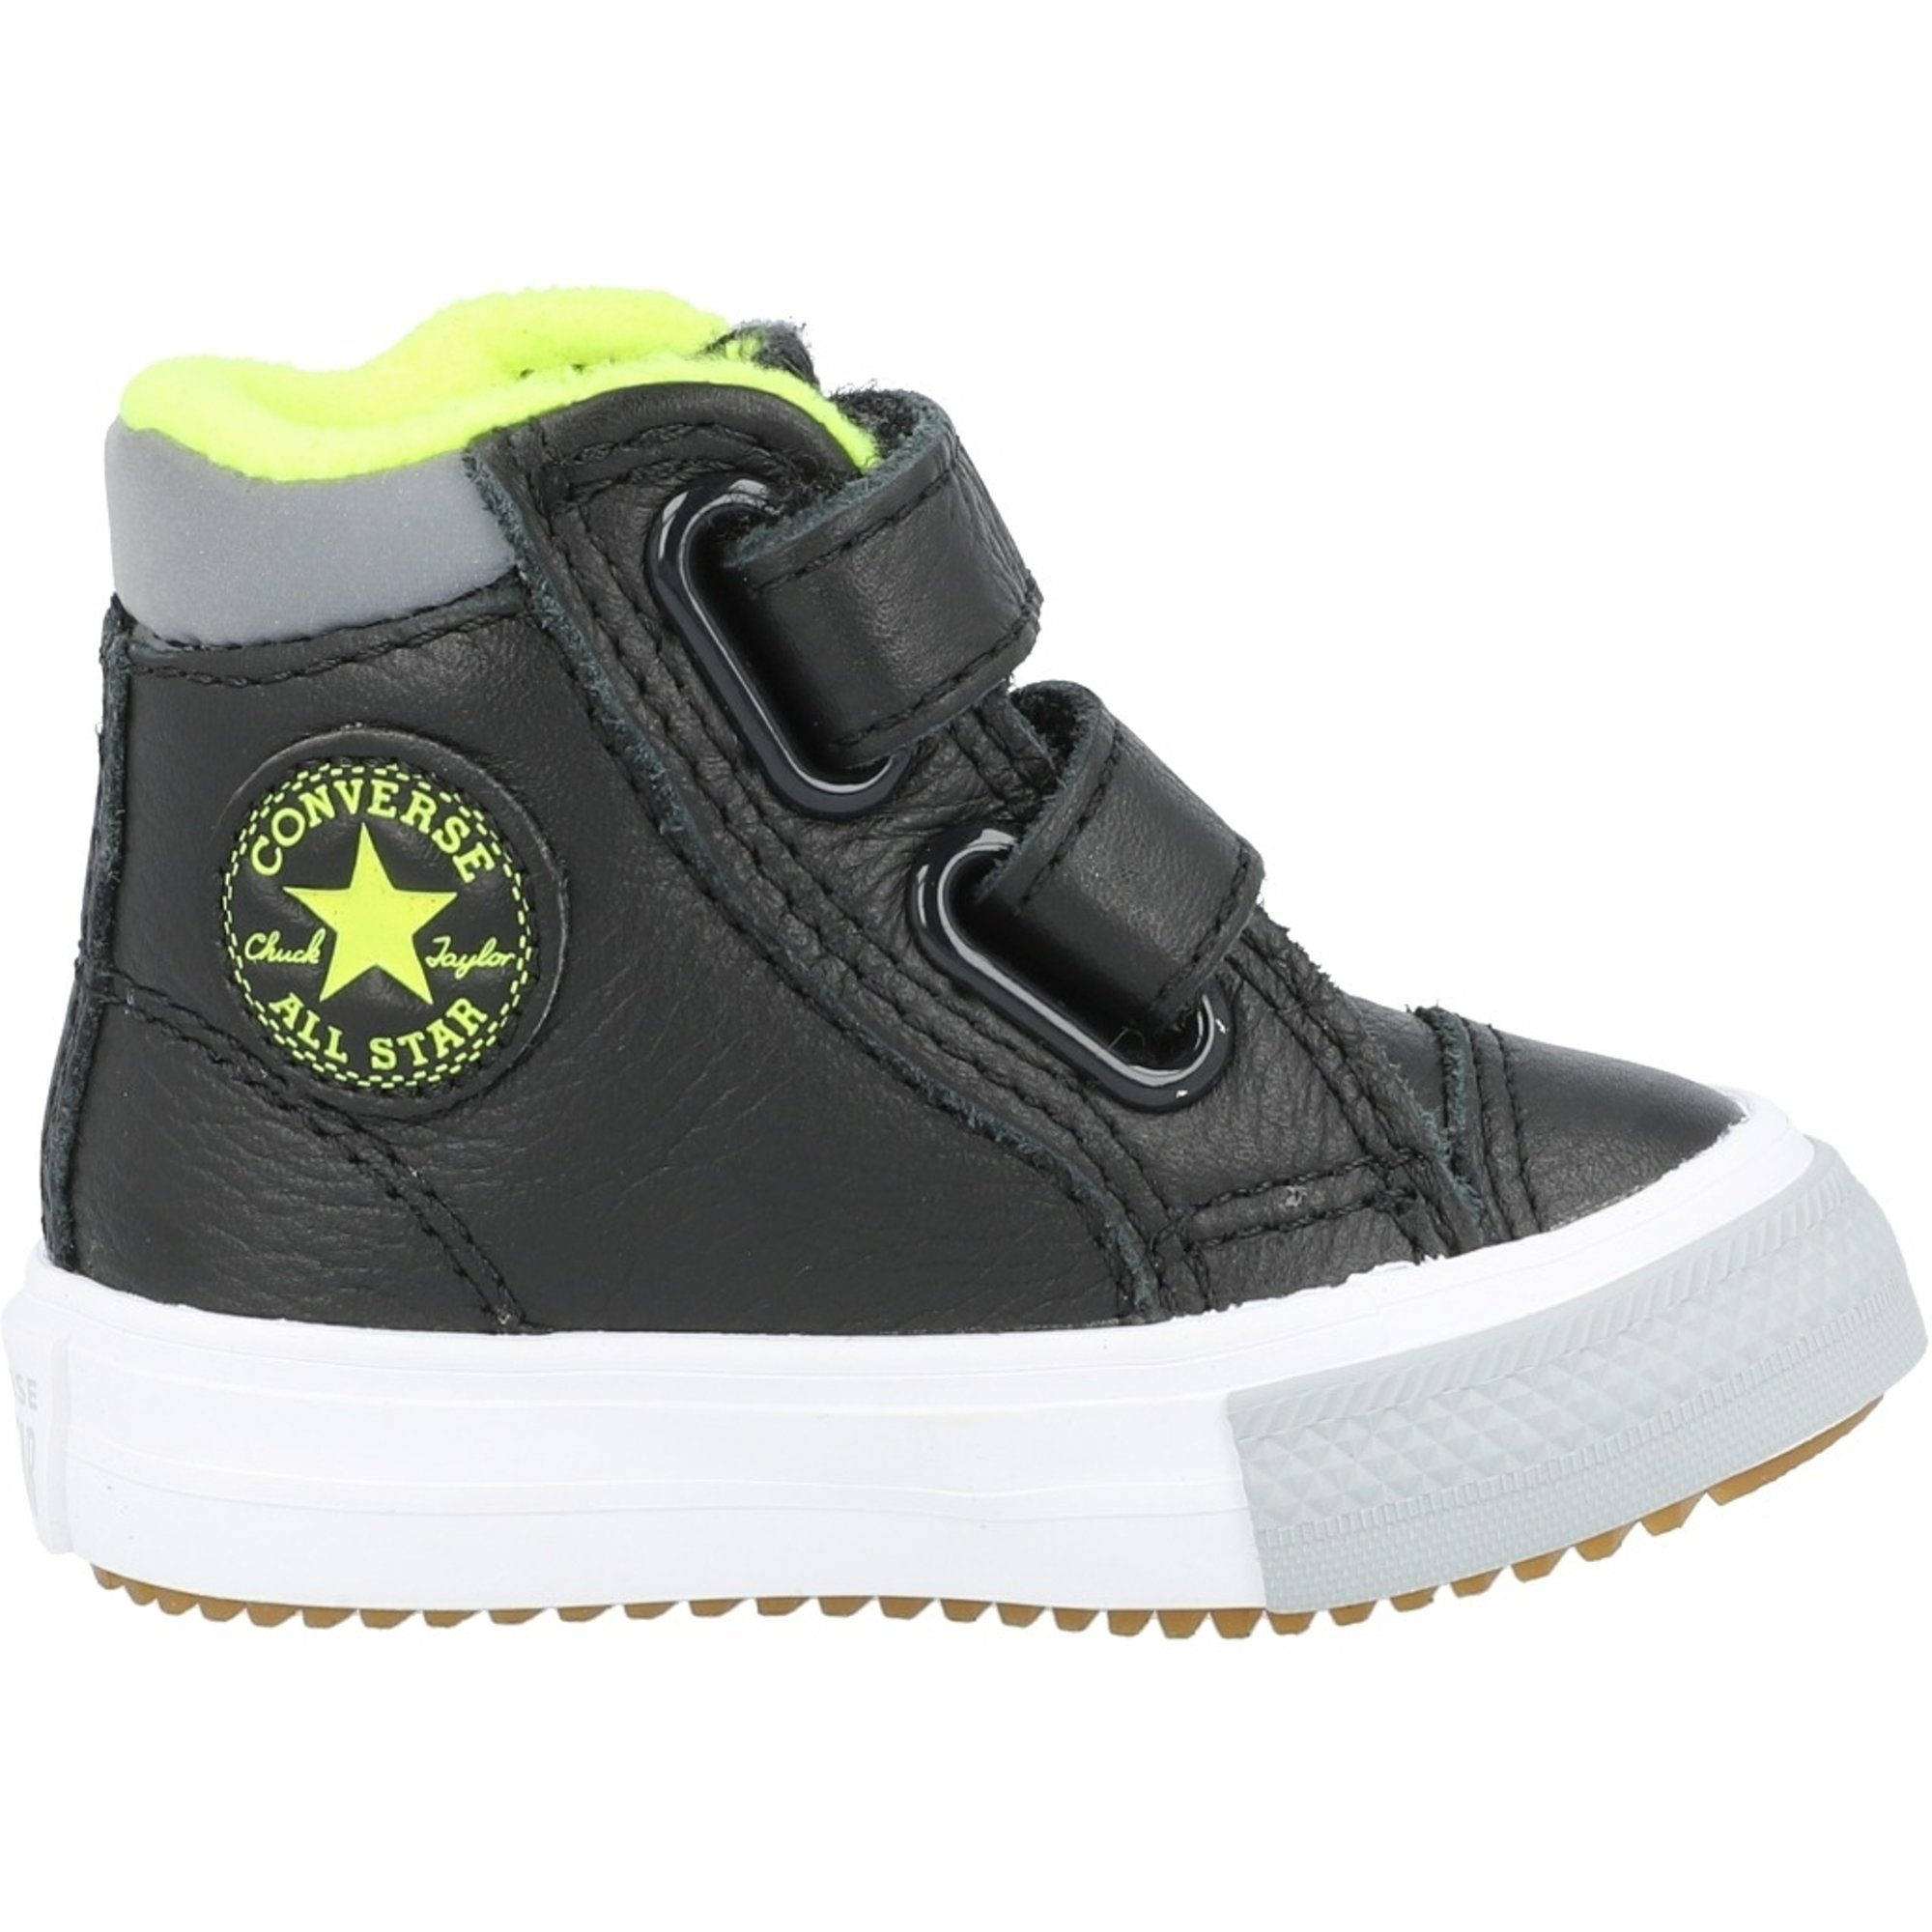 Converse Chuck Taylor All Star 2V PC Boot Hi Utility Black/Ash Stone Leather